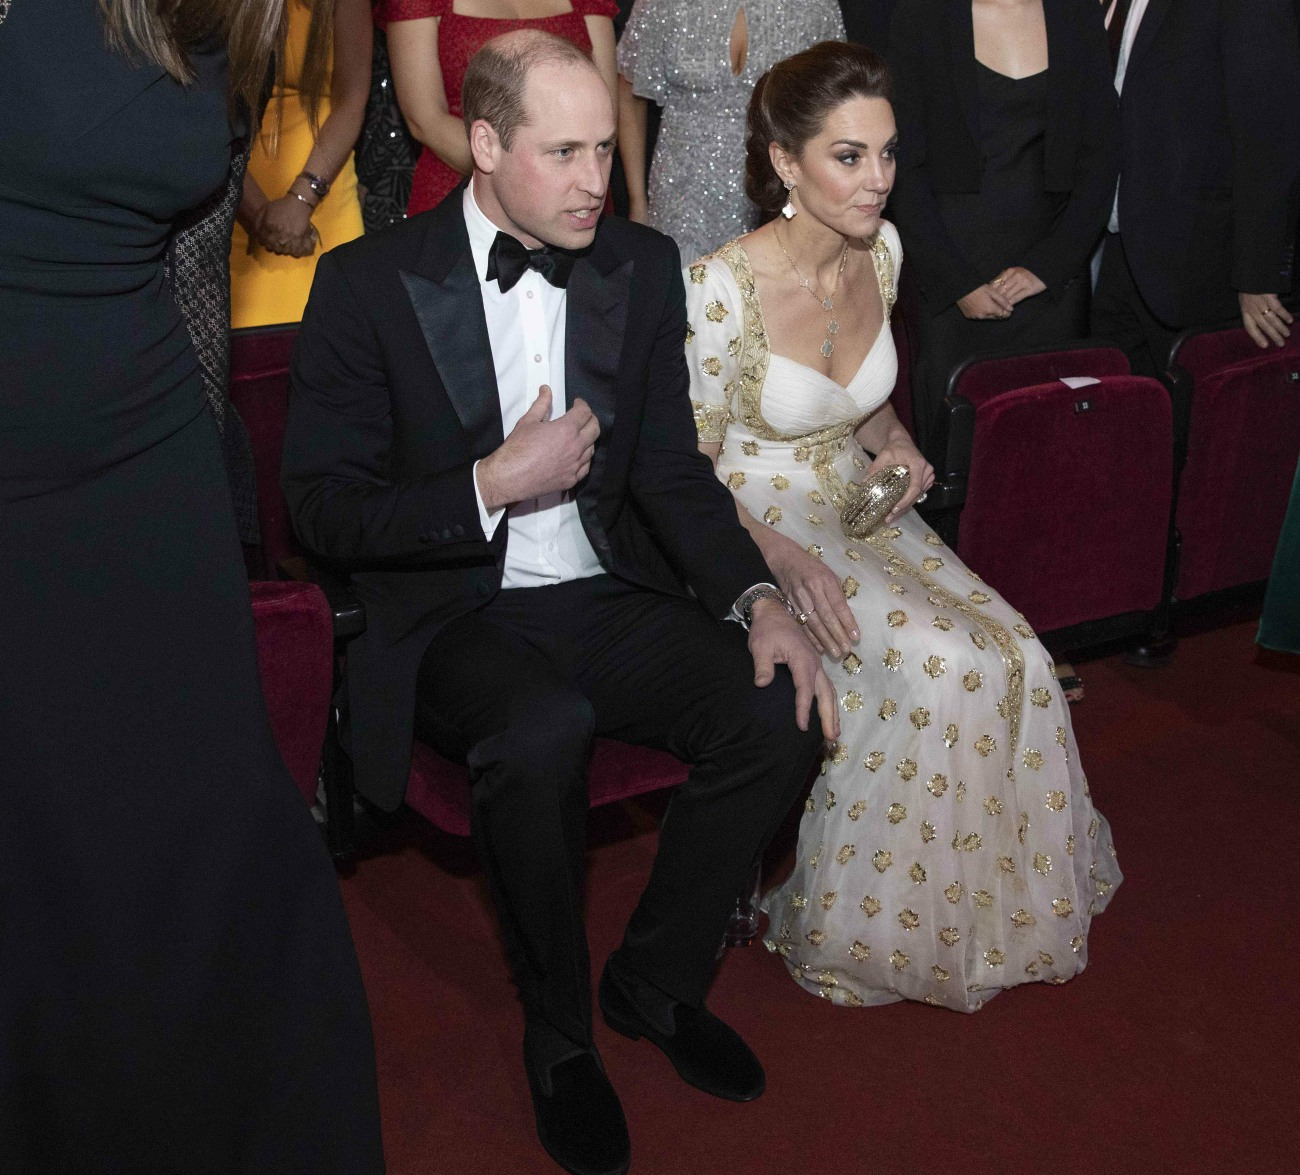 The Duke and Duchess of Cambridge attend the EE British Academy Film Awards ceremony at the Royal Albert Hall.